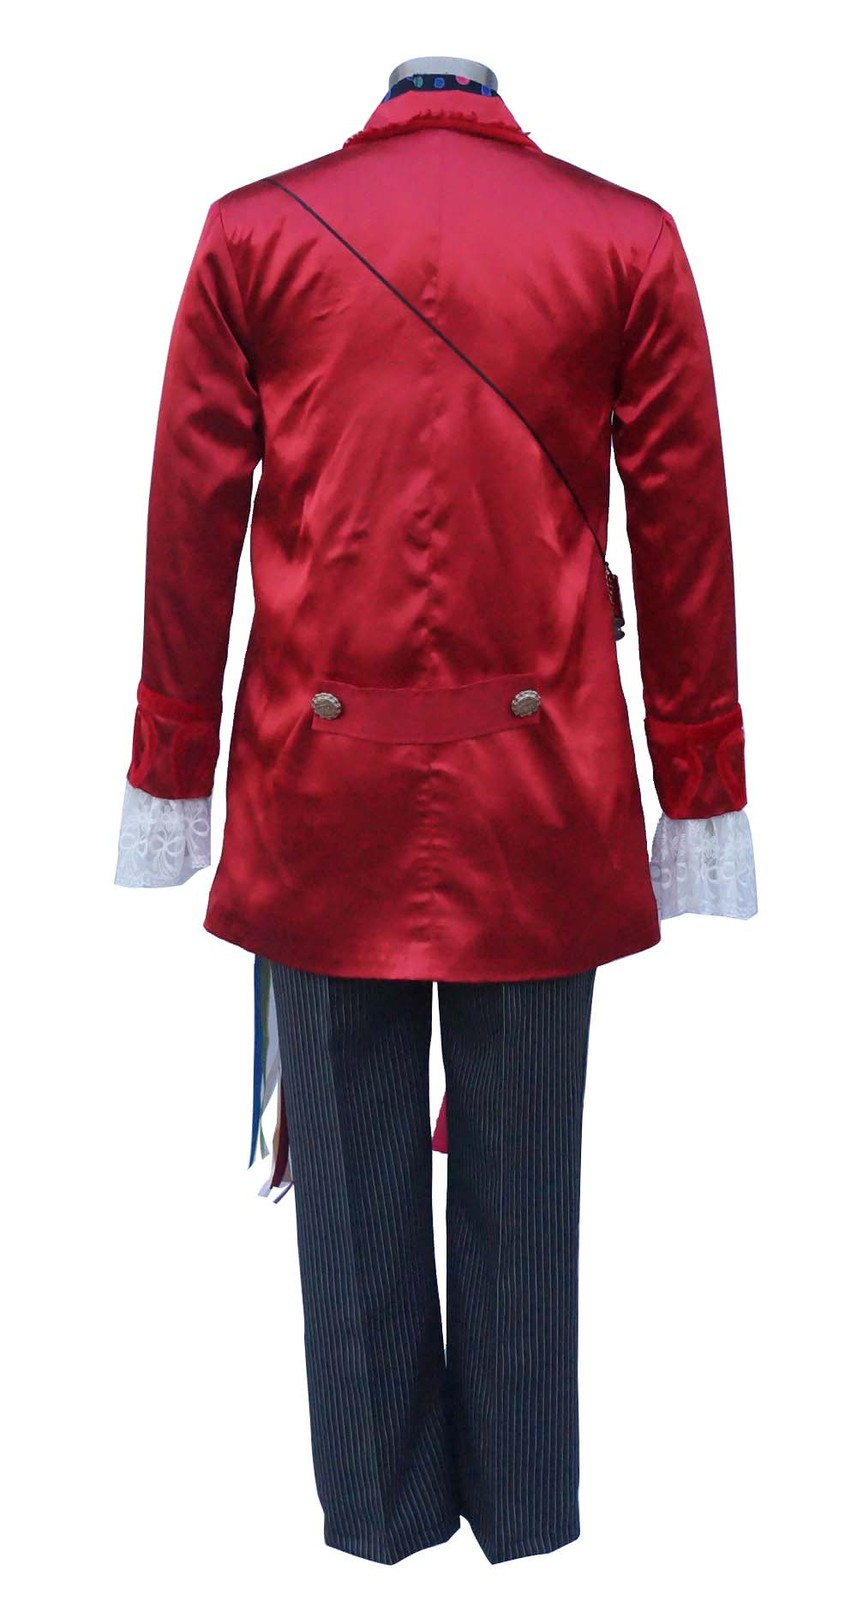 Alice in Wonderland Electric Mad Hatter Cosplay Costume Set With Hat